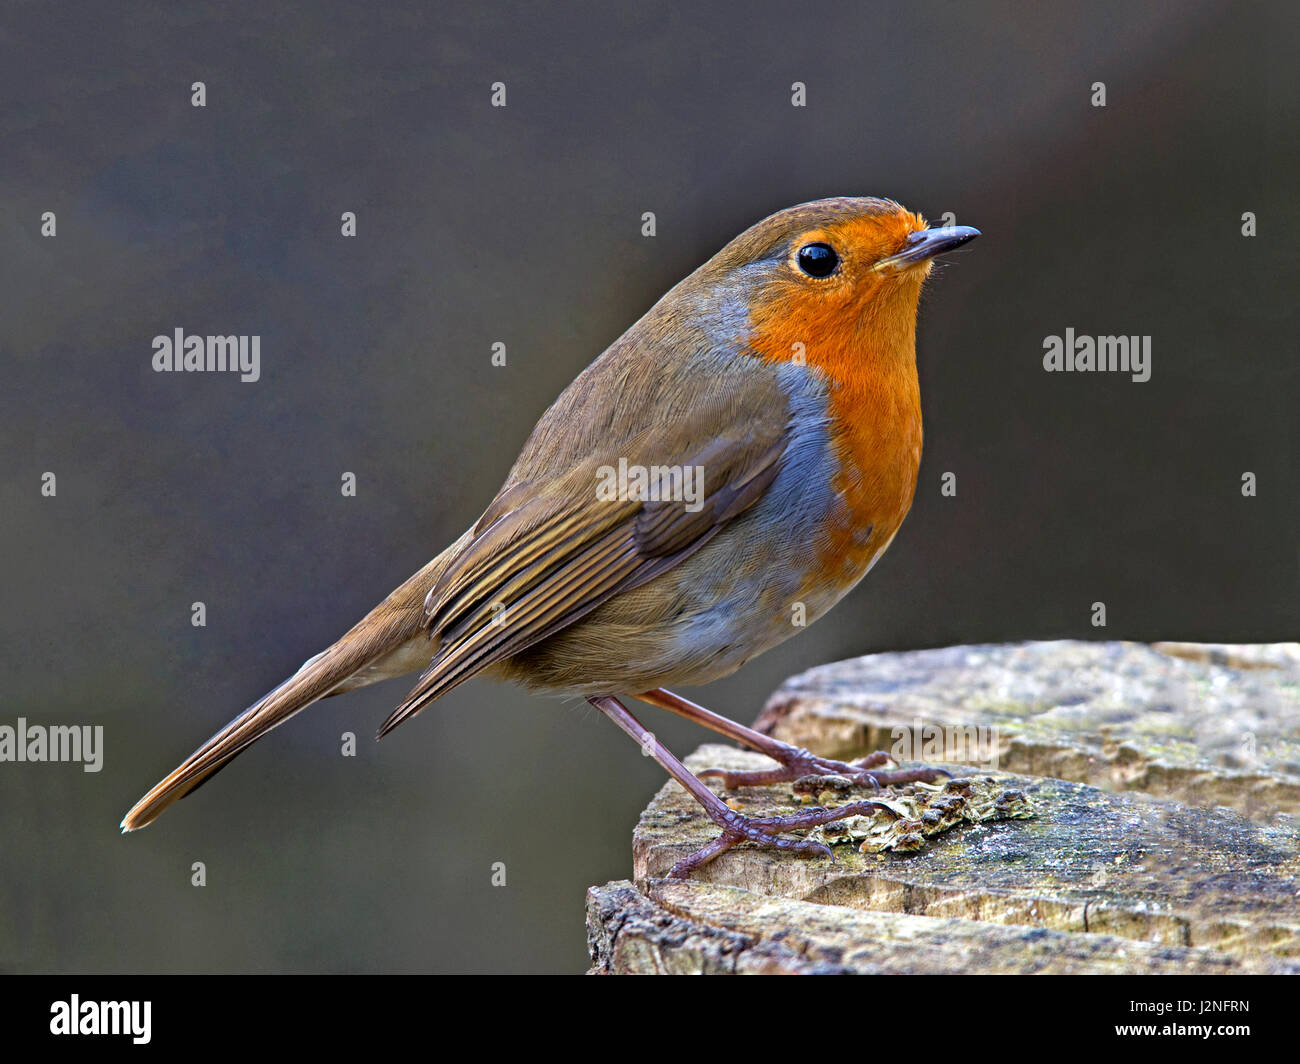 European robin perched - Stock Image